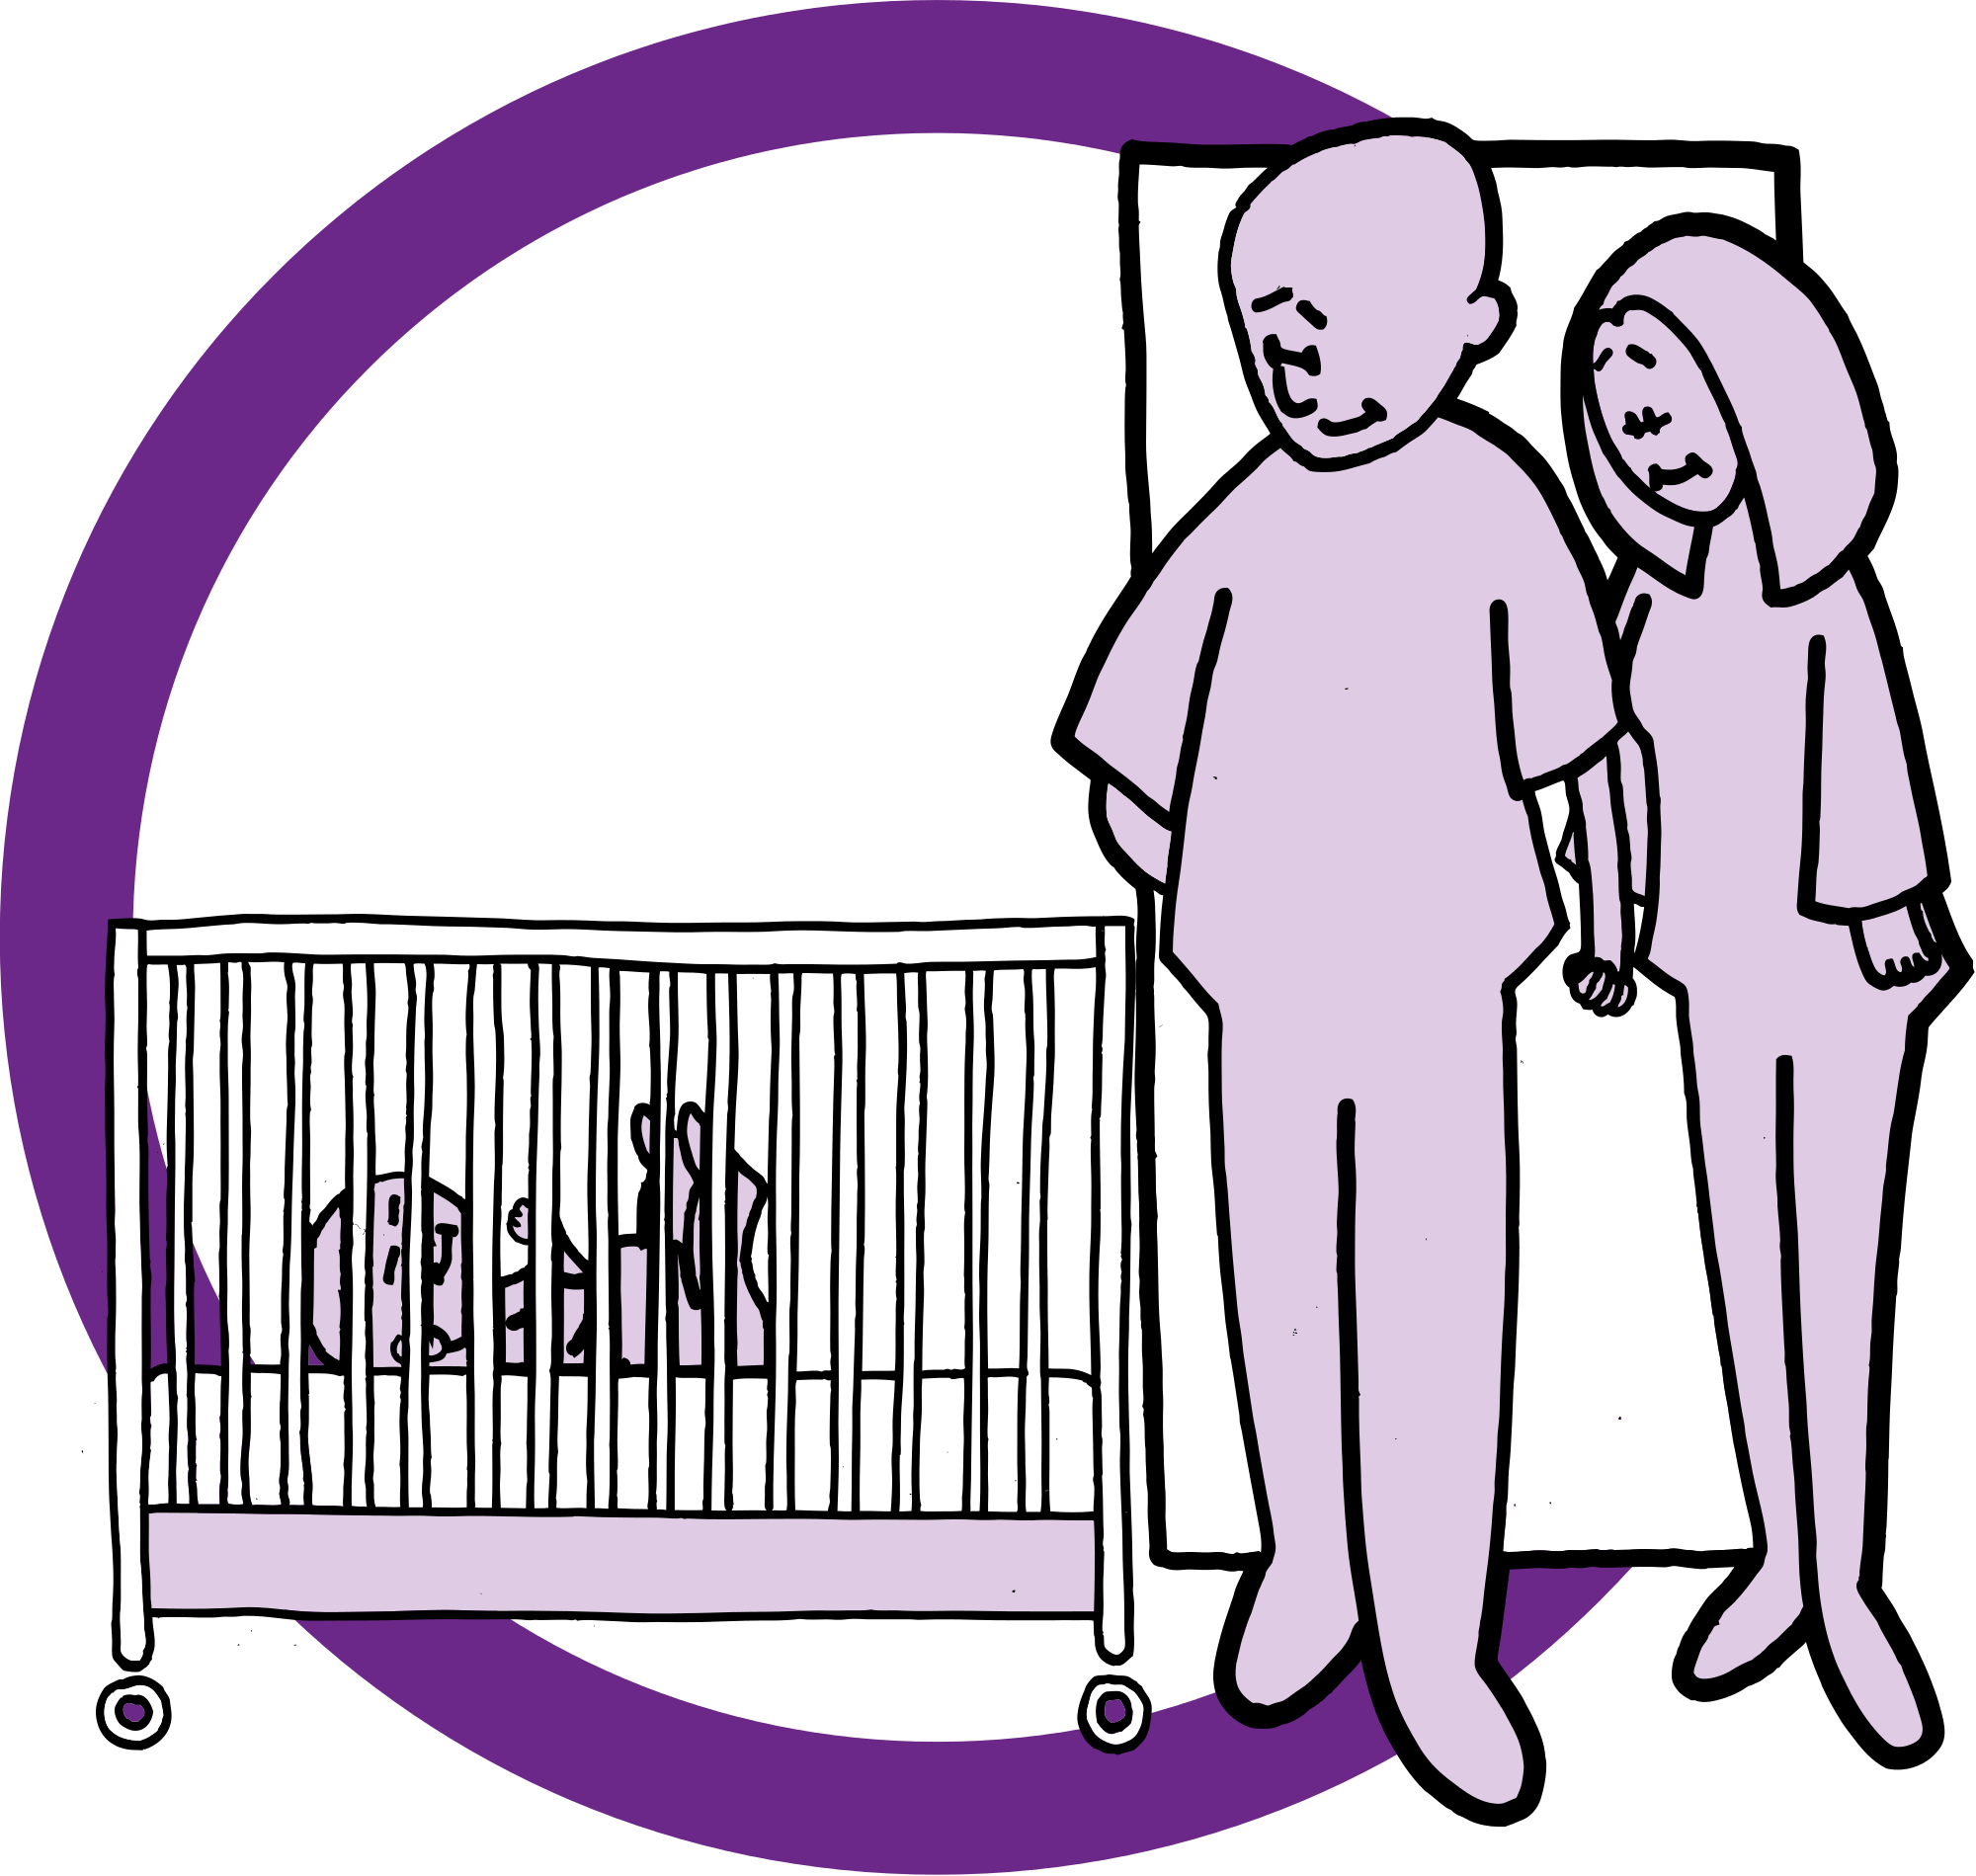 Employee clipart interaction. File child in crib